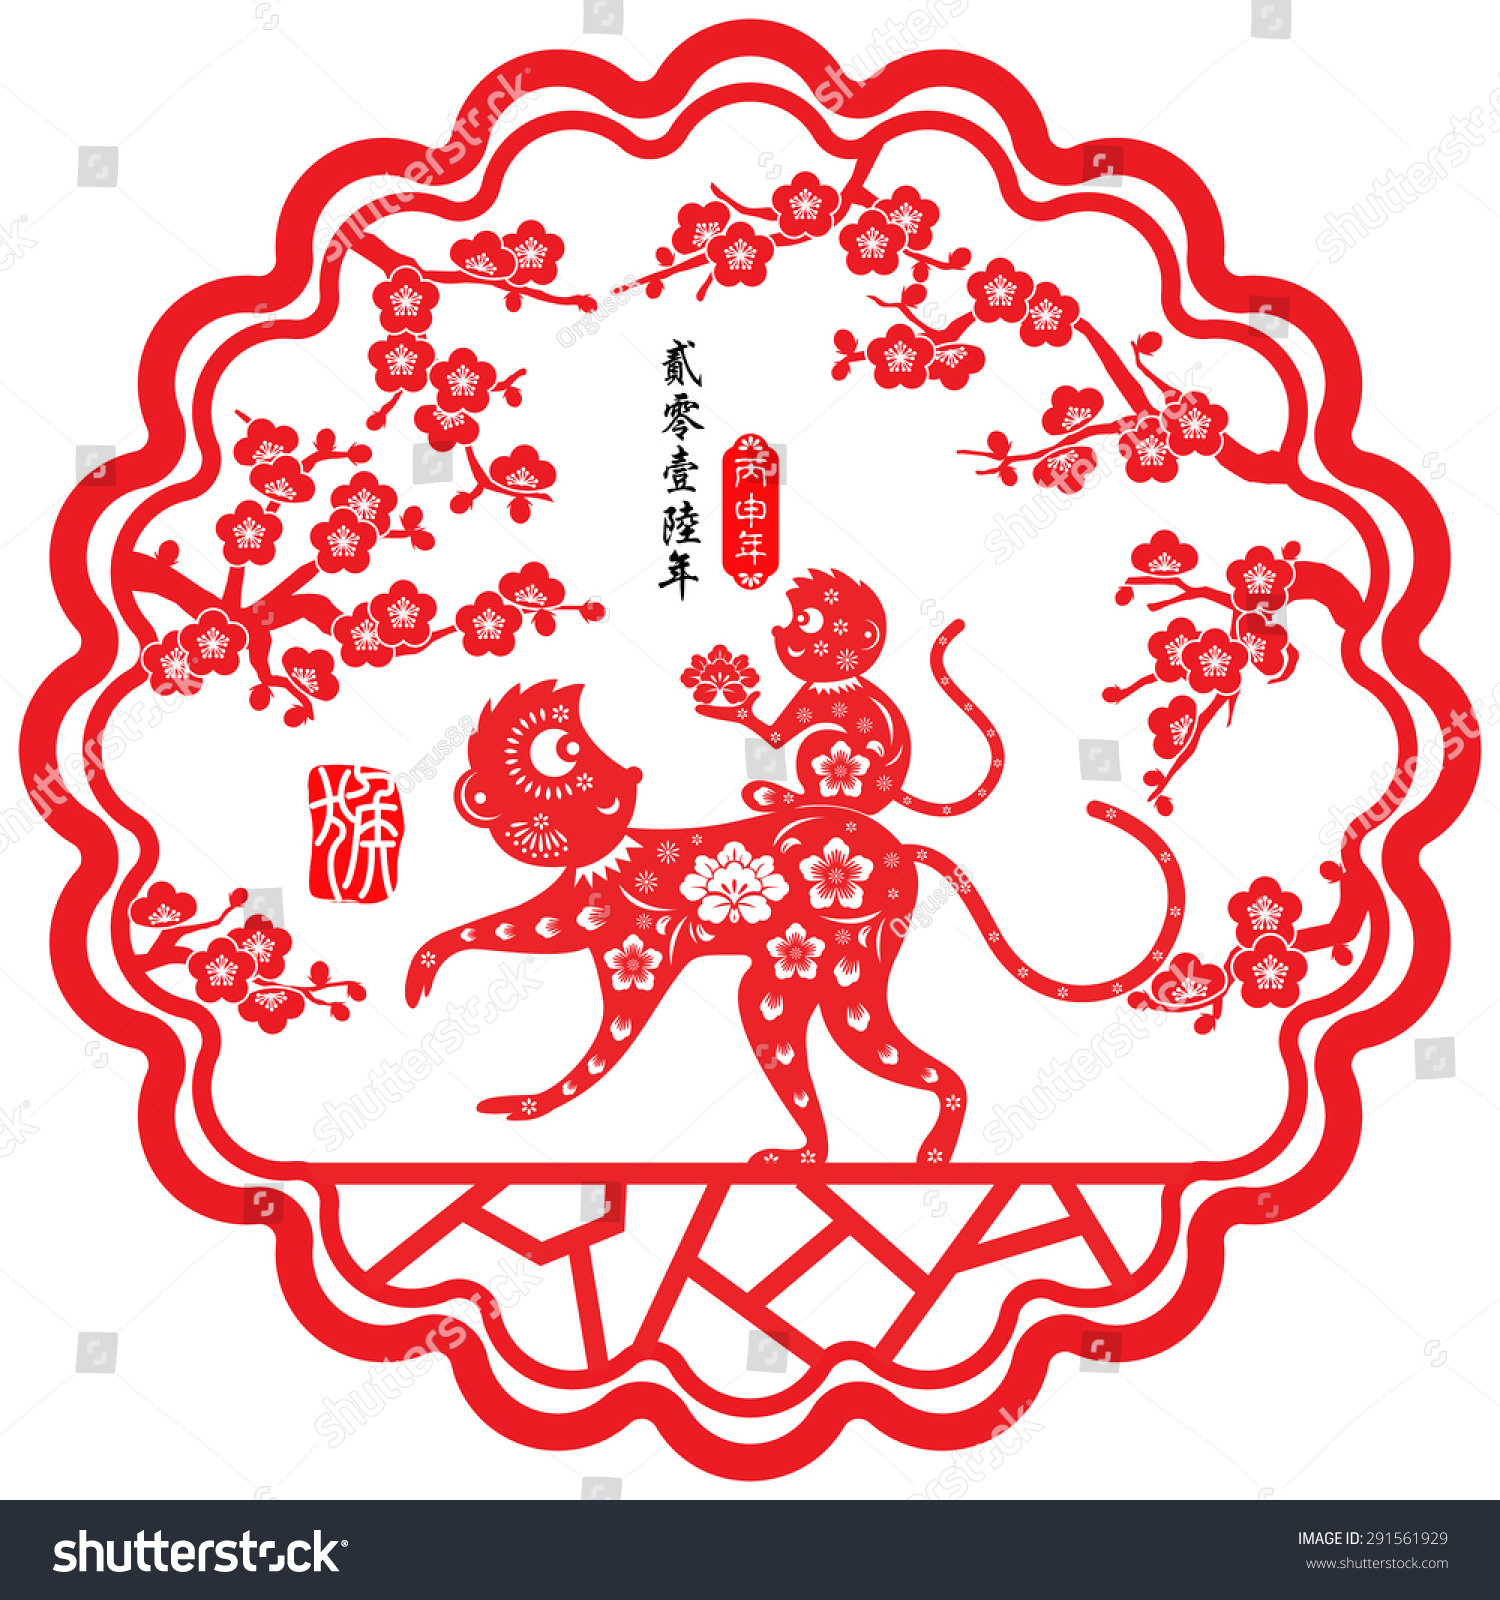 2016 Lunar New Year Greeting Card Stock Vector 291561929 ...